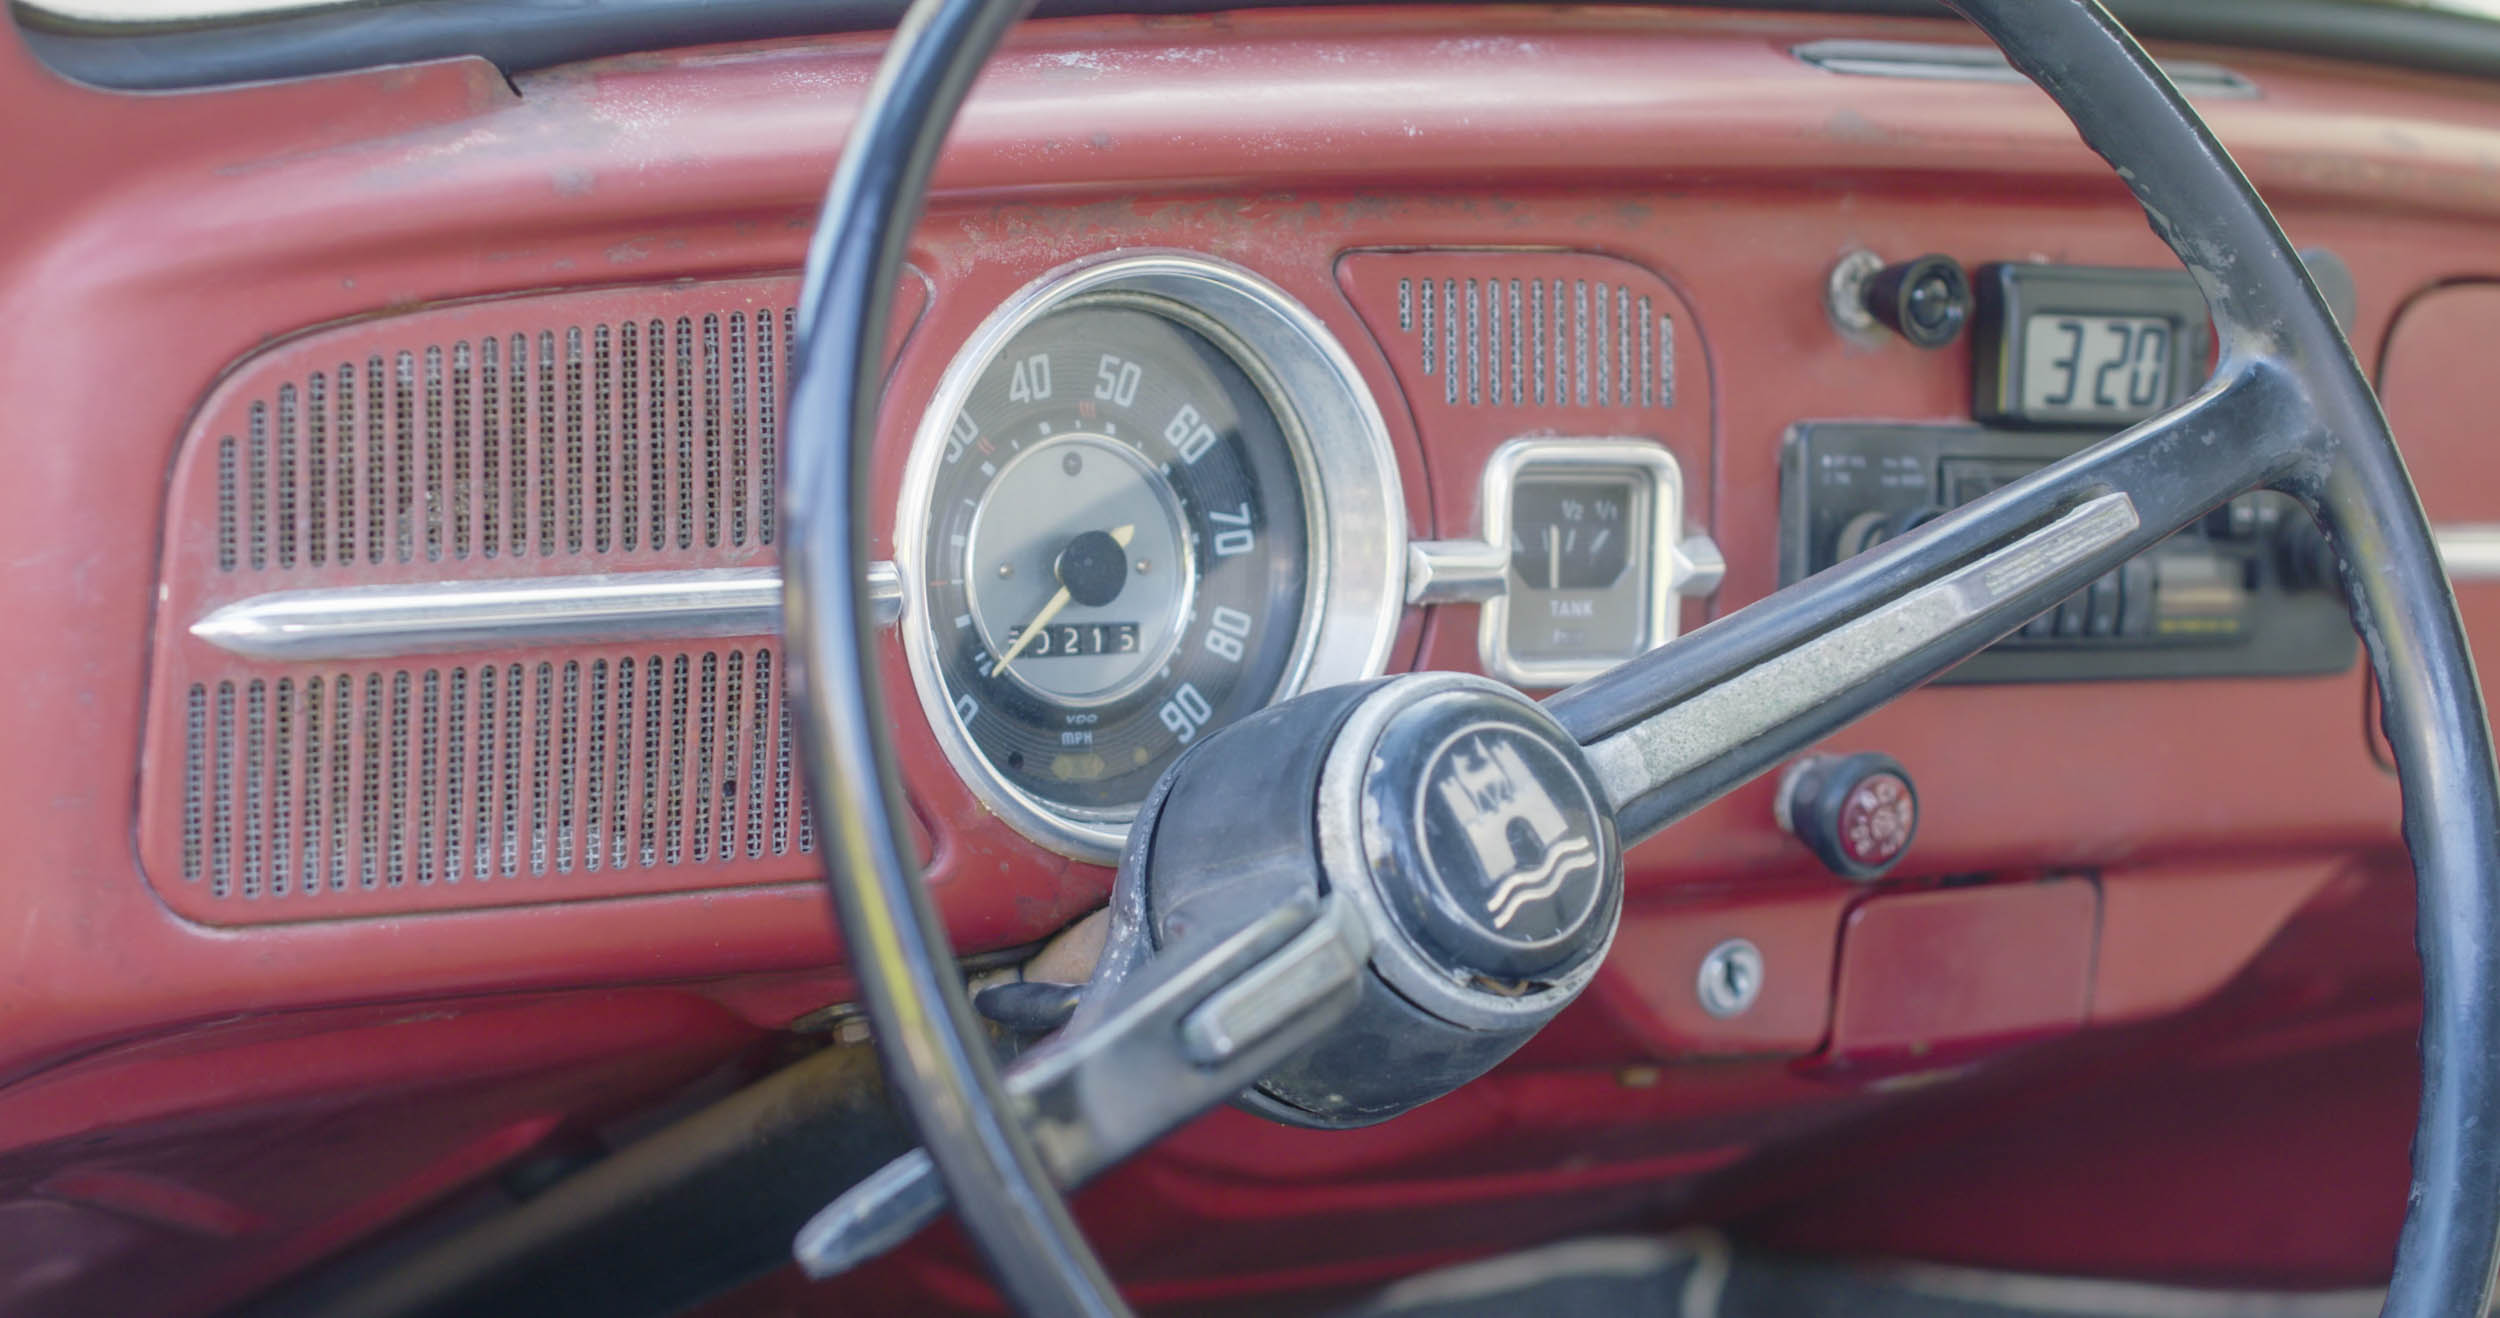 1967 Volkswagen Beetle steering wheel before restoration